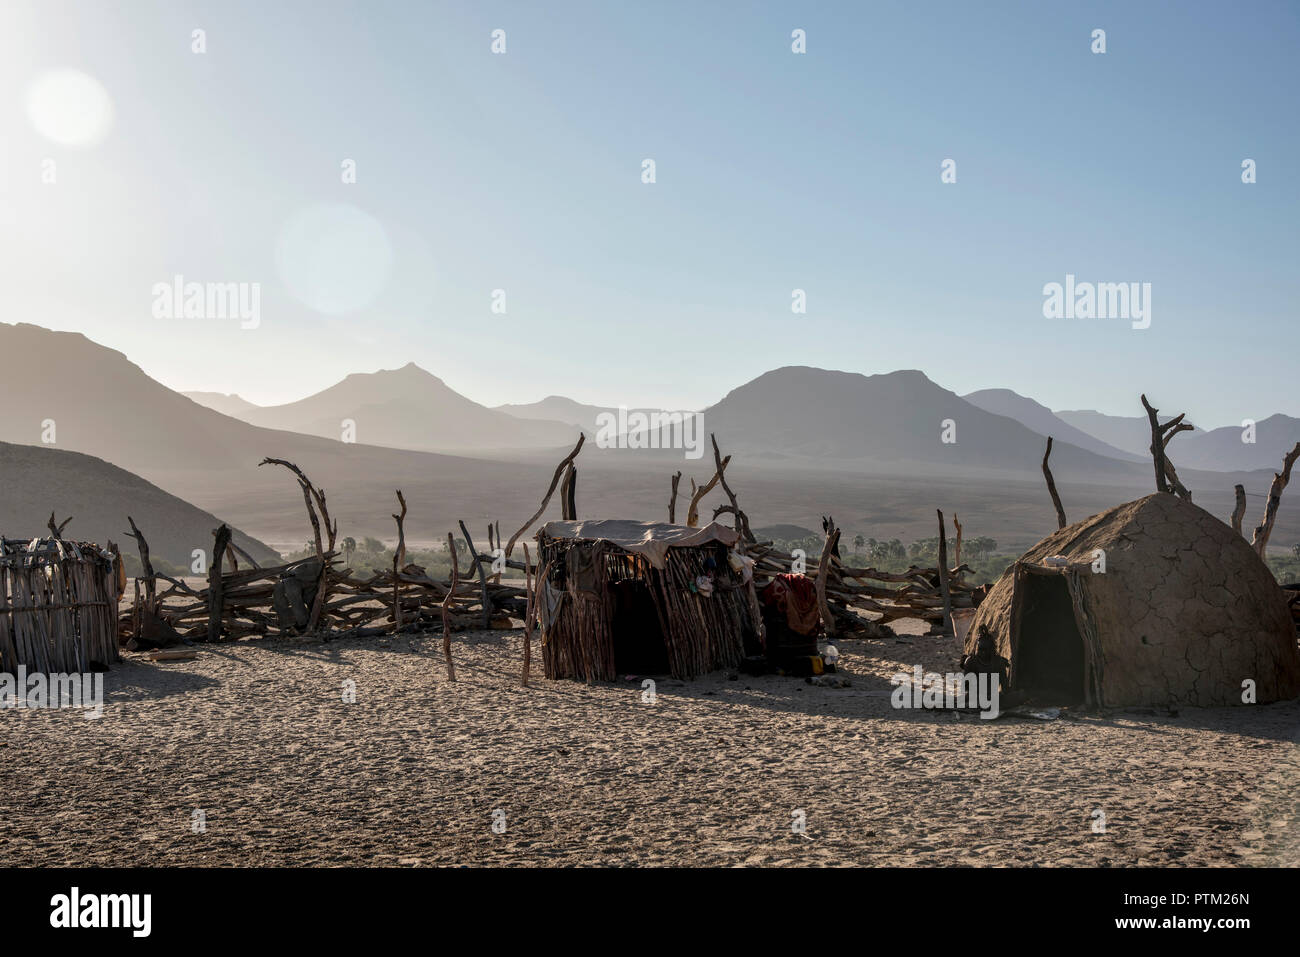 A Himba village with traditional mud huts in the remote province of Kaokaland near to the town of Purros in Namibia. - Stock Image